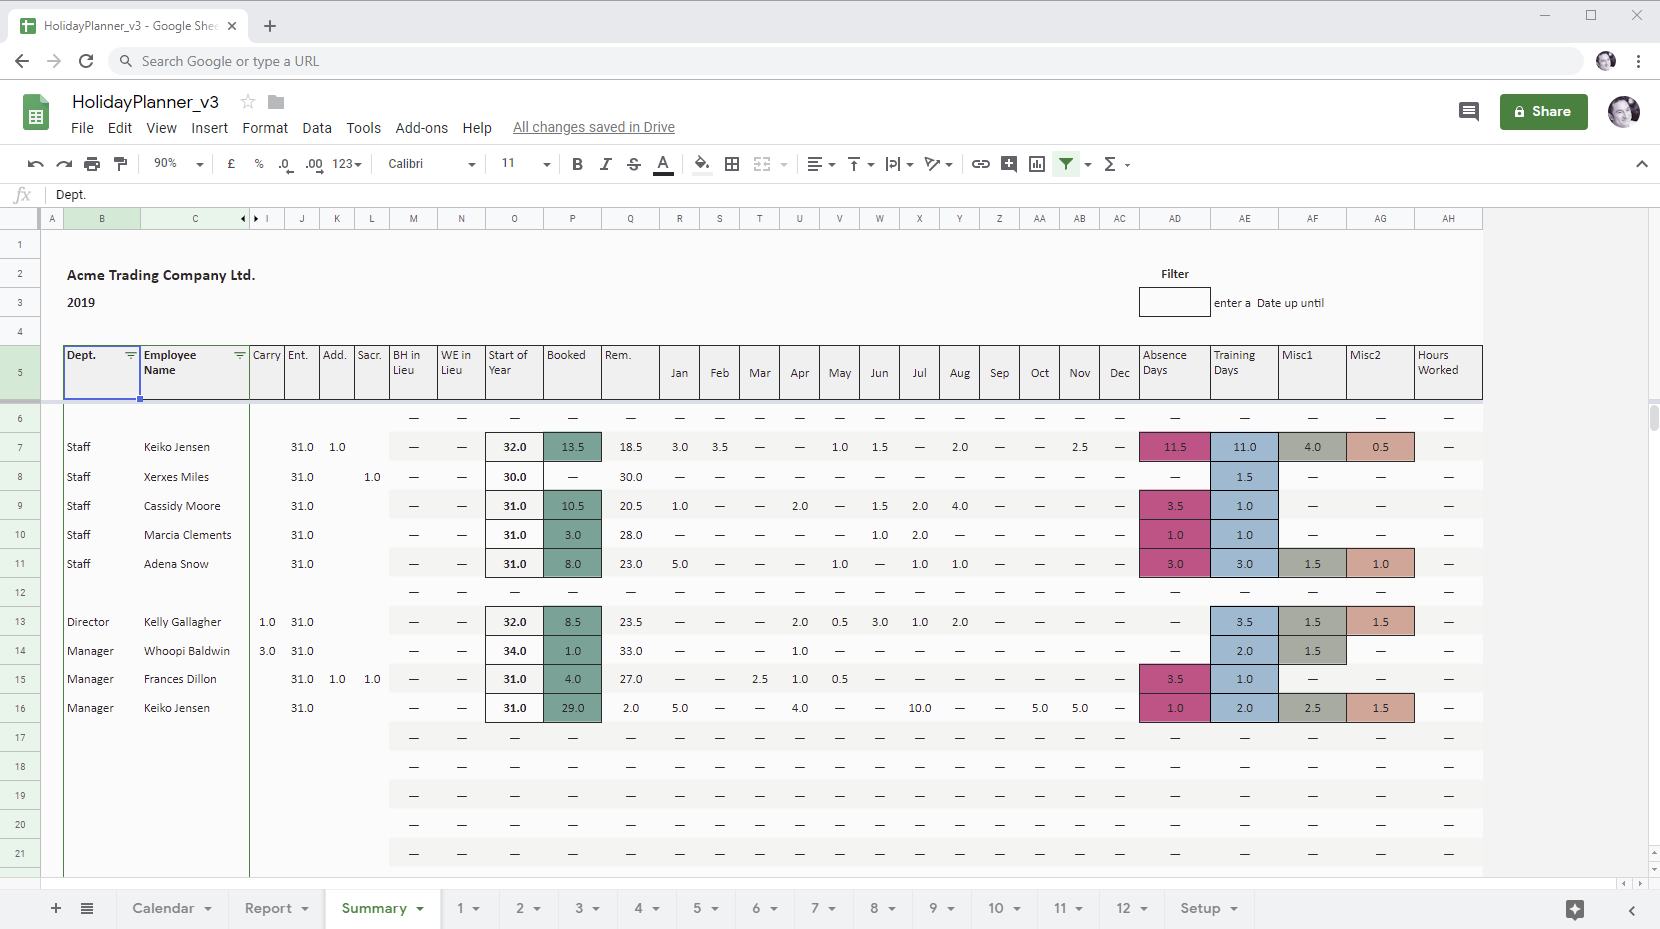 Holiday Planner Google Sheets Summary Worksheet Screen Shot